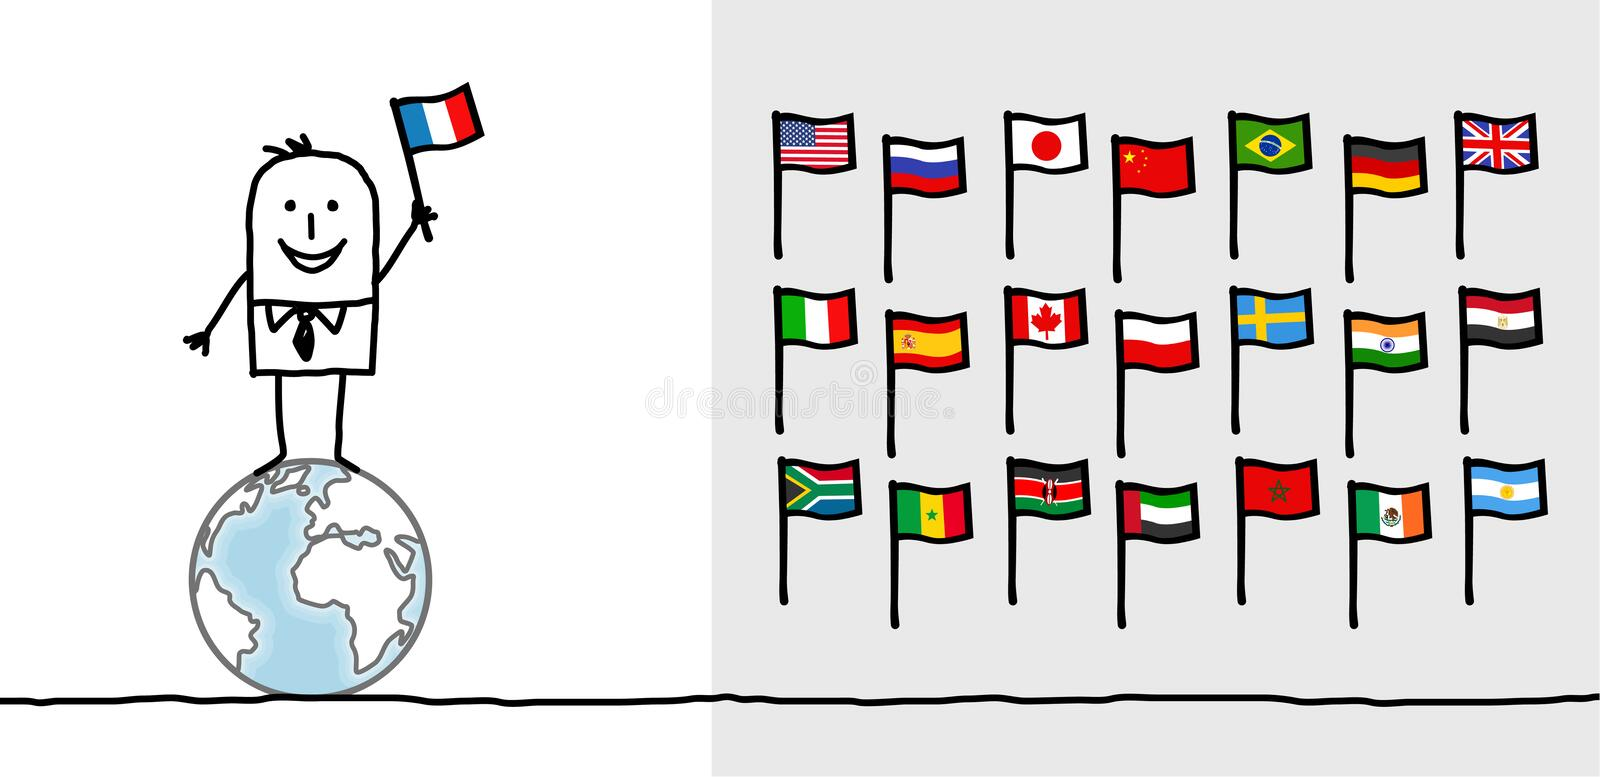 Man & world flags. Hand drawn cartoon characters - man & world flags